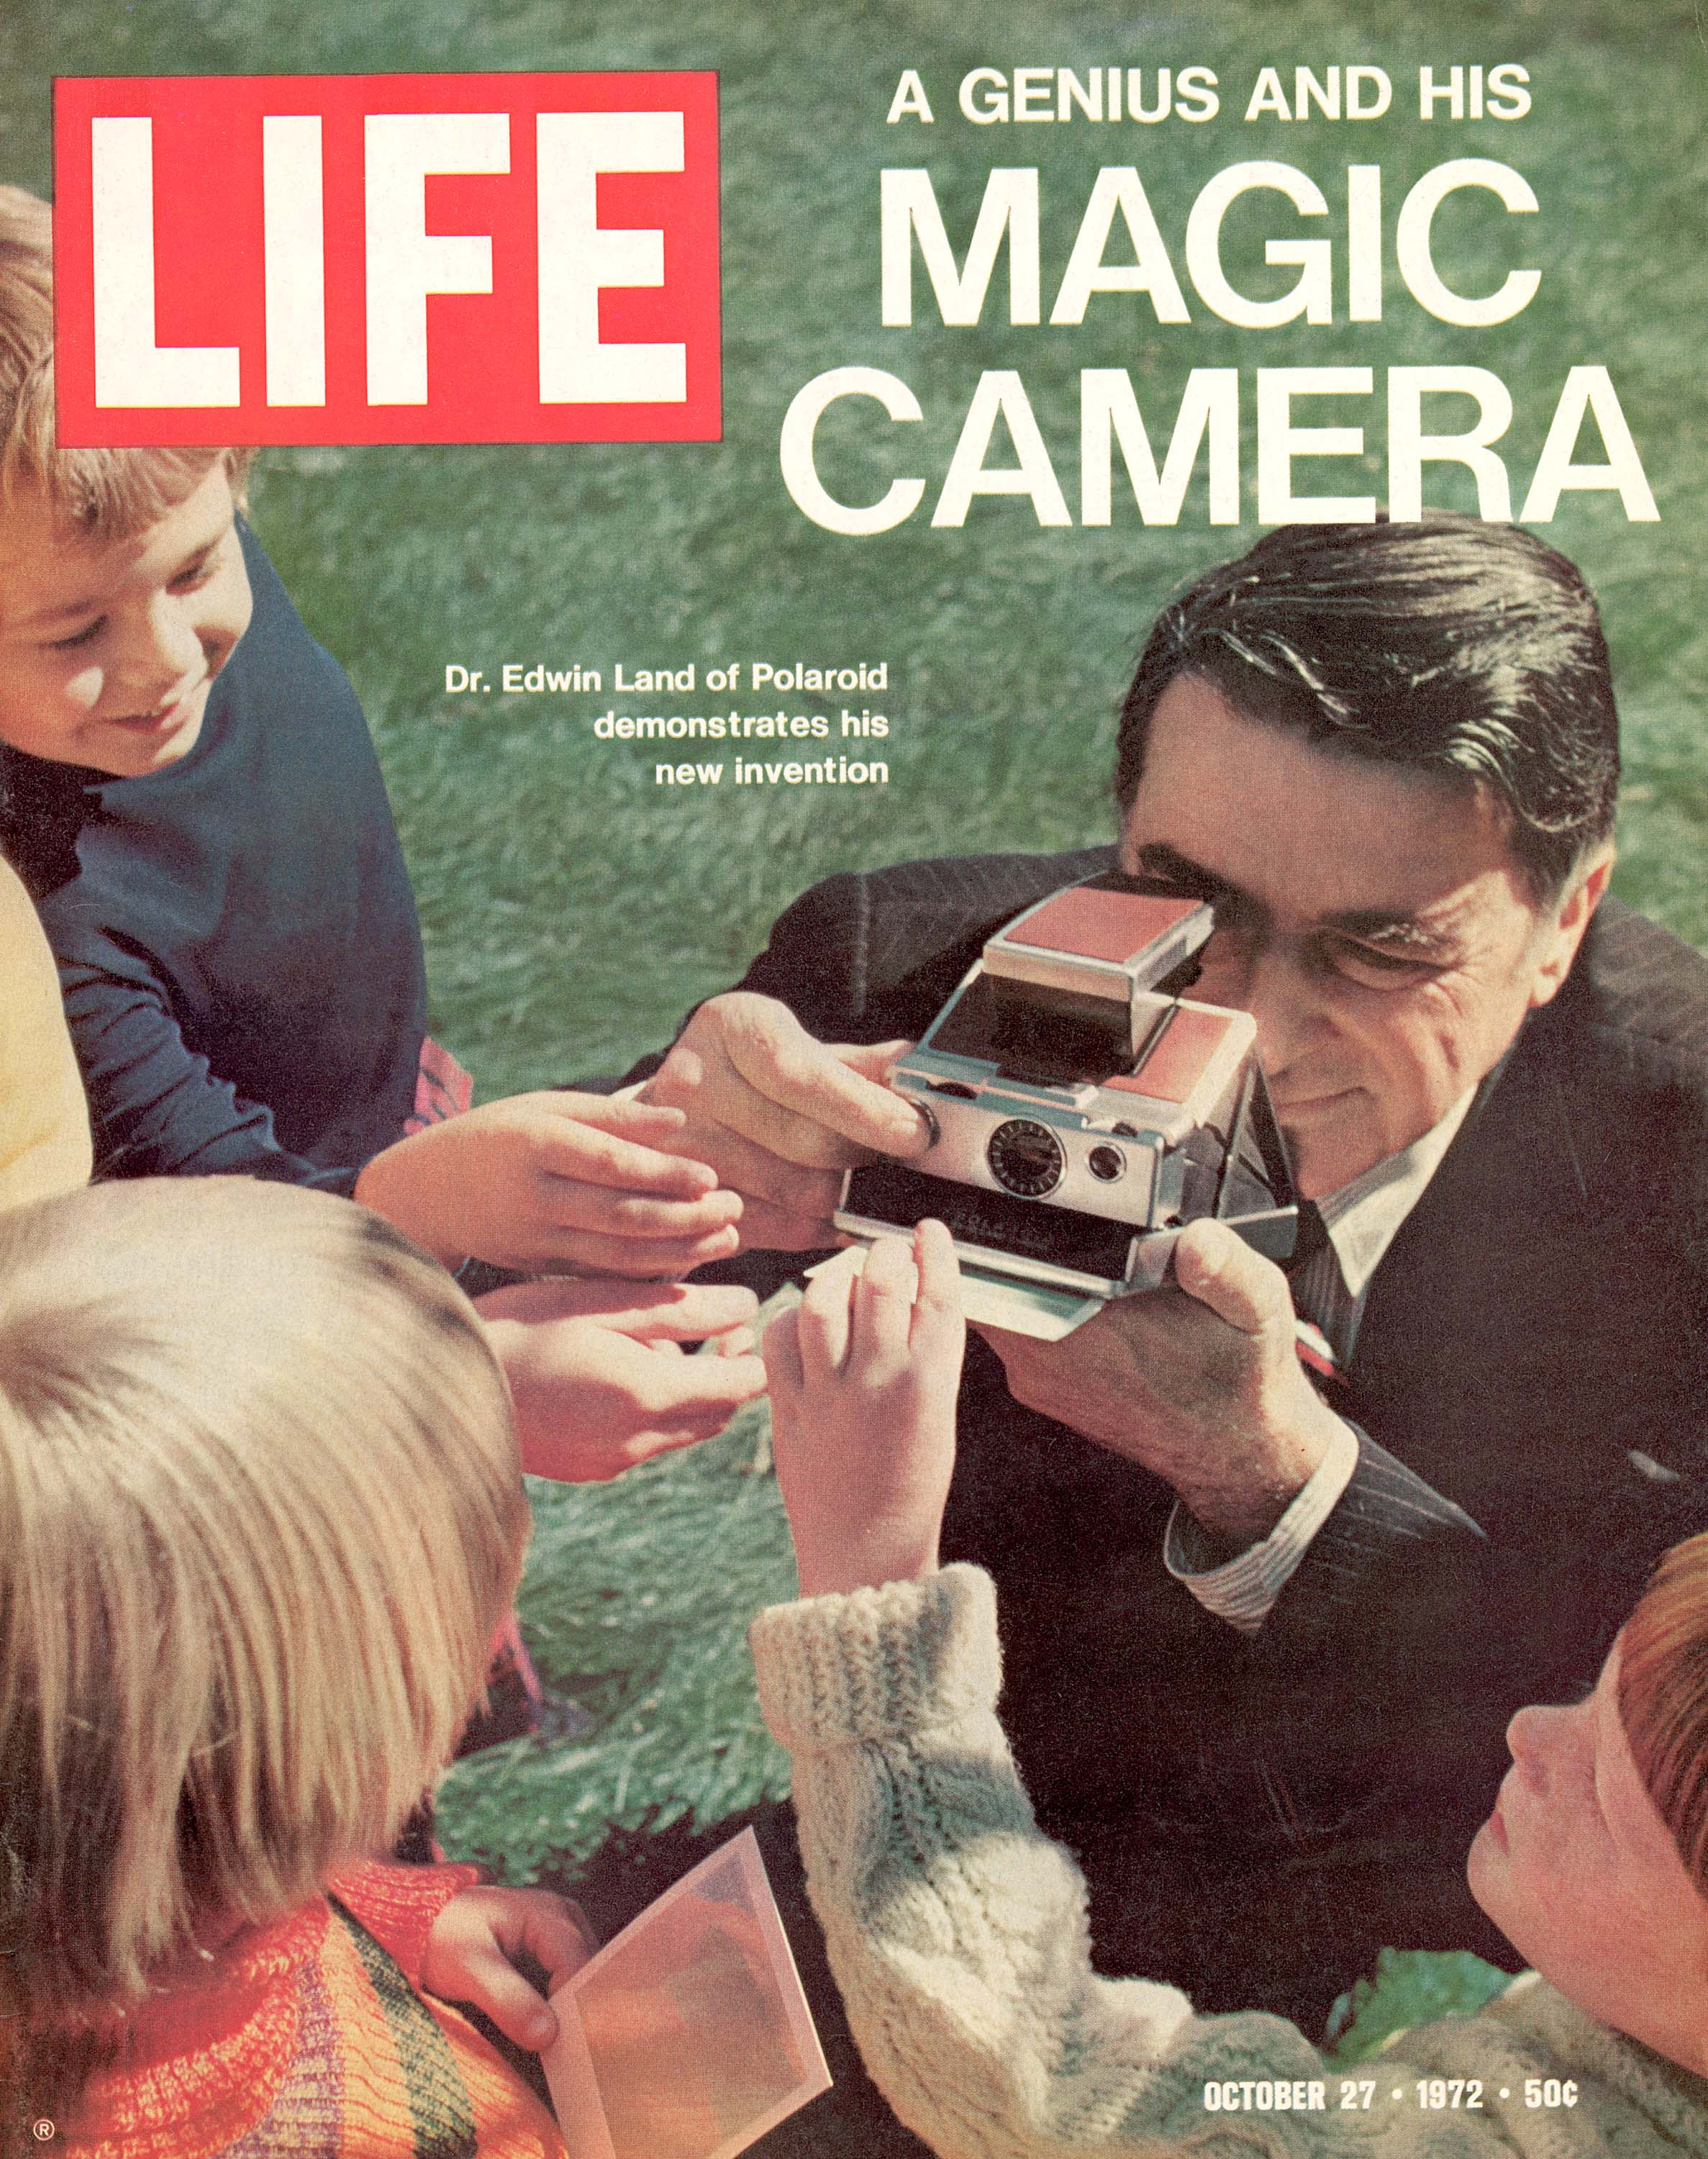 October 27, 1972, cover of LIFE magazine